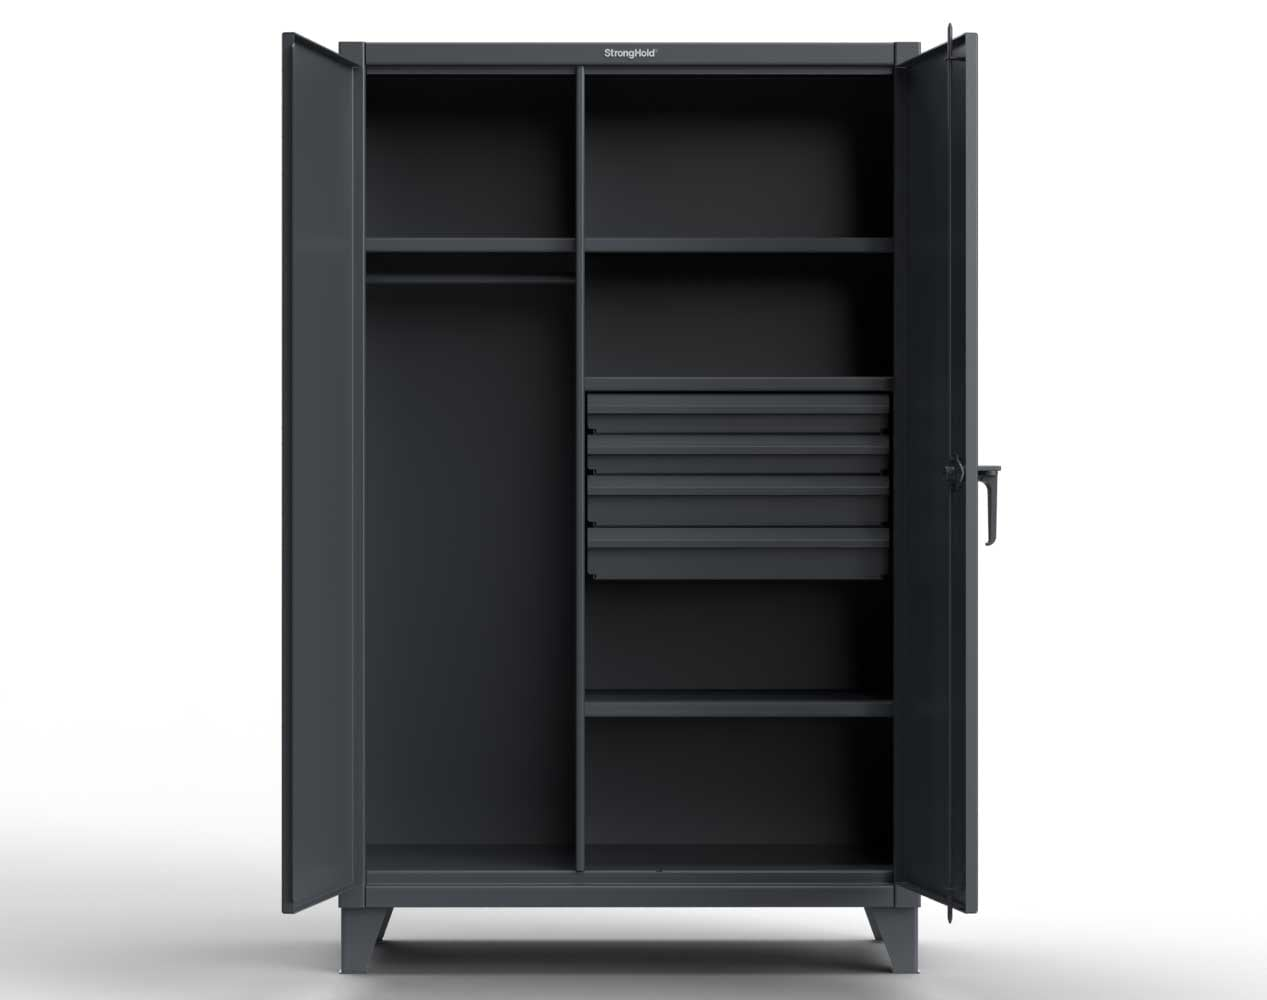 Extra Heavy Duty 12 GA Wardrobe Cabinet with 4 Drawers, 4 Shelves – 48 In. W x 24 In. D x 78 In. H